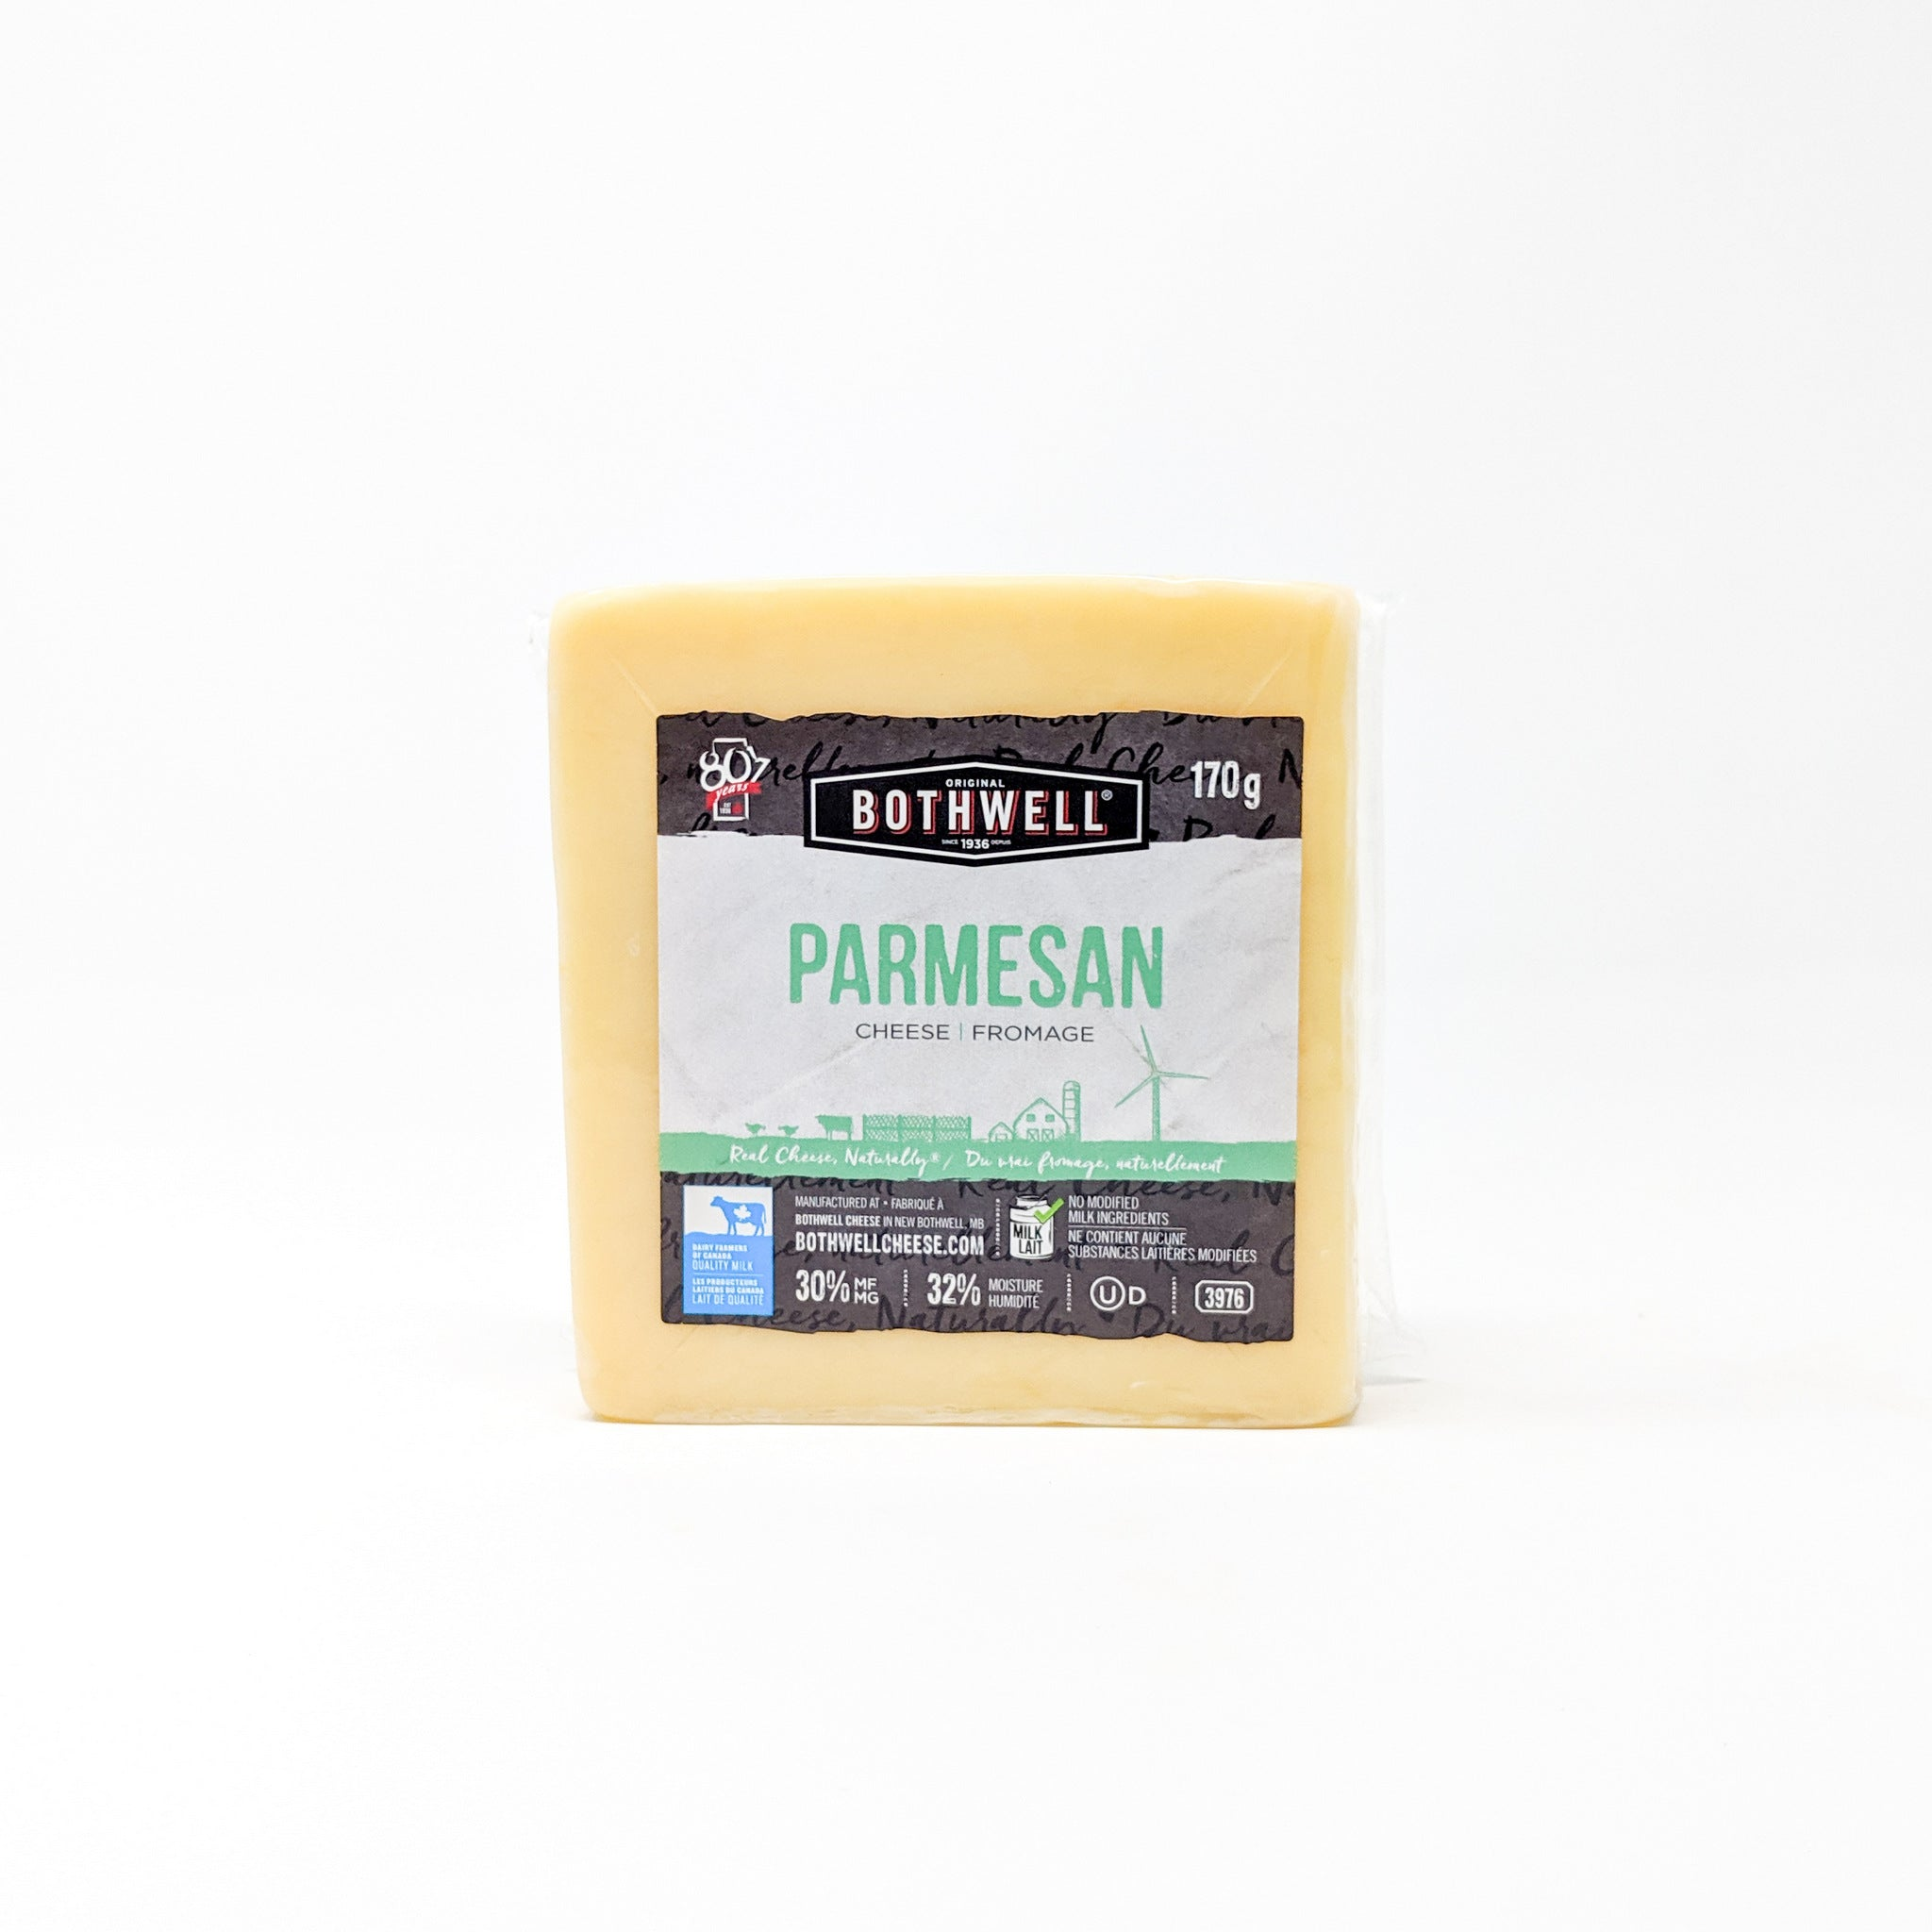 Parmesan 170g - Bothwell Cheese